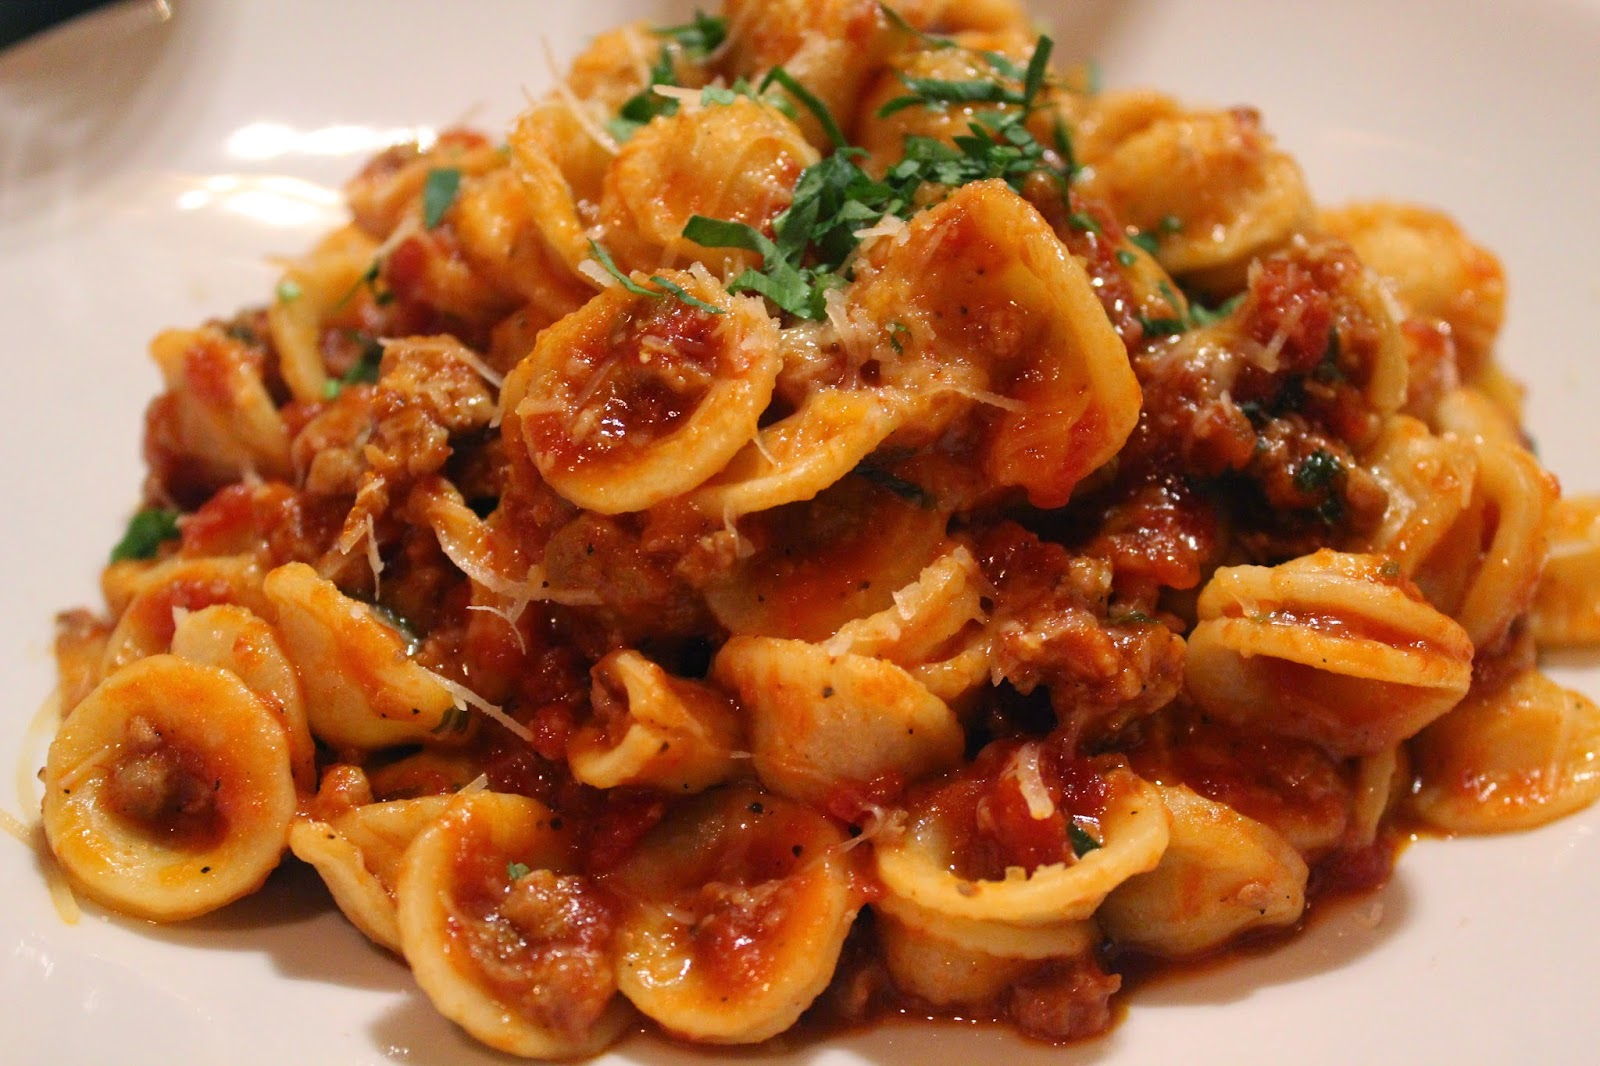 Orecchiette with sausage ragu at Orta, Pembroke, Mass.